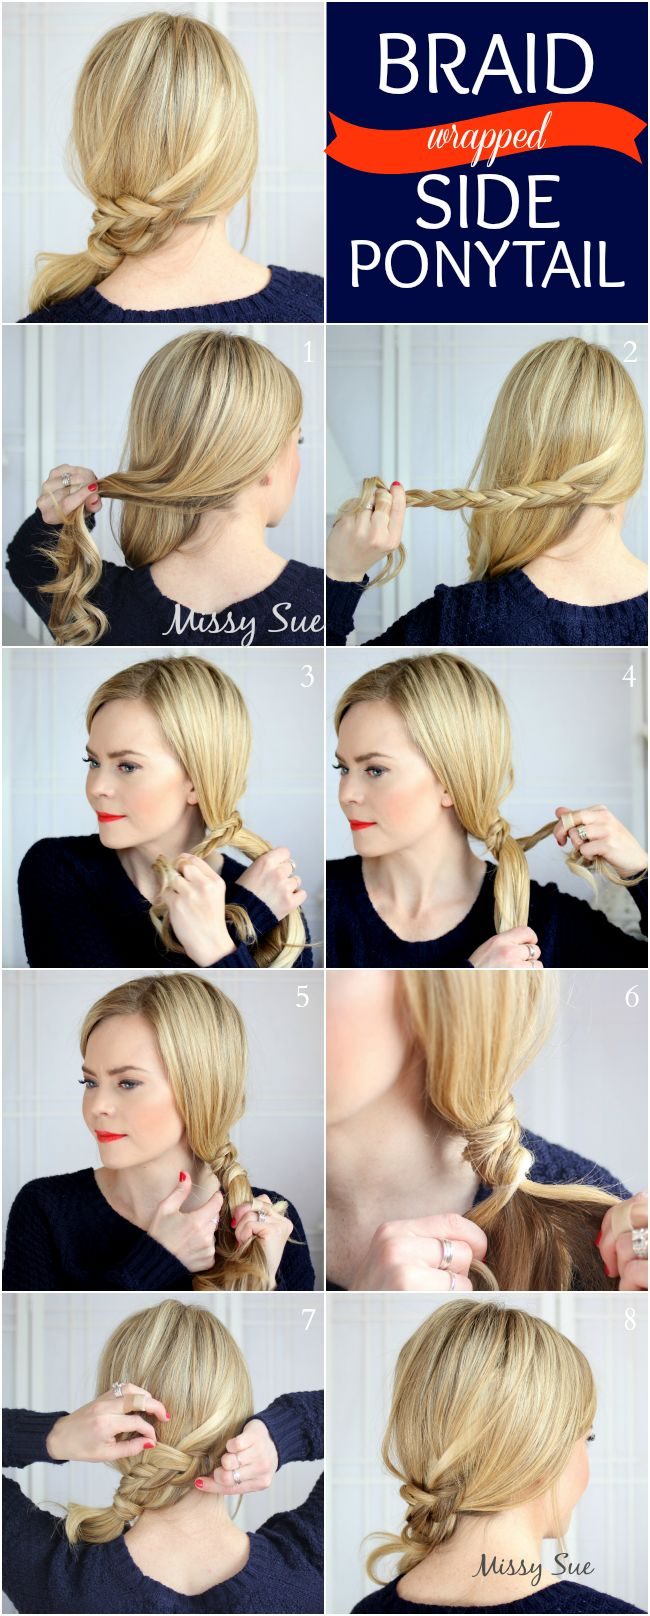 DIY | Braid 12-Braid Wrapped Side Ponytail Tutorial